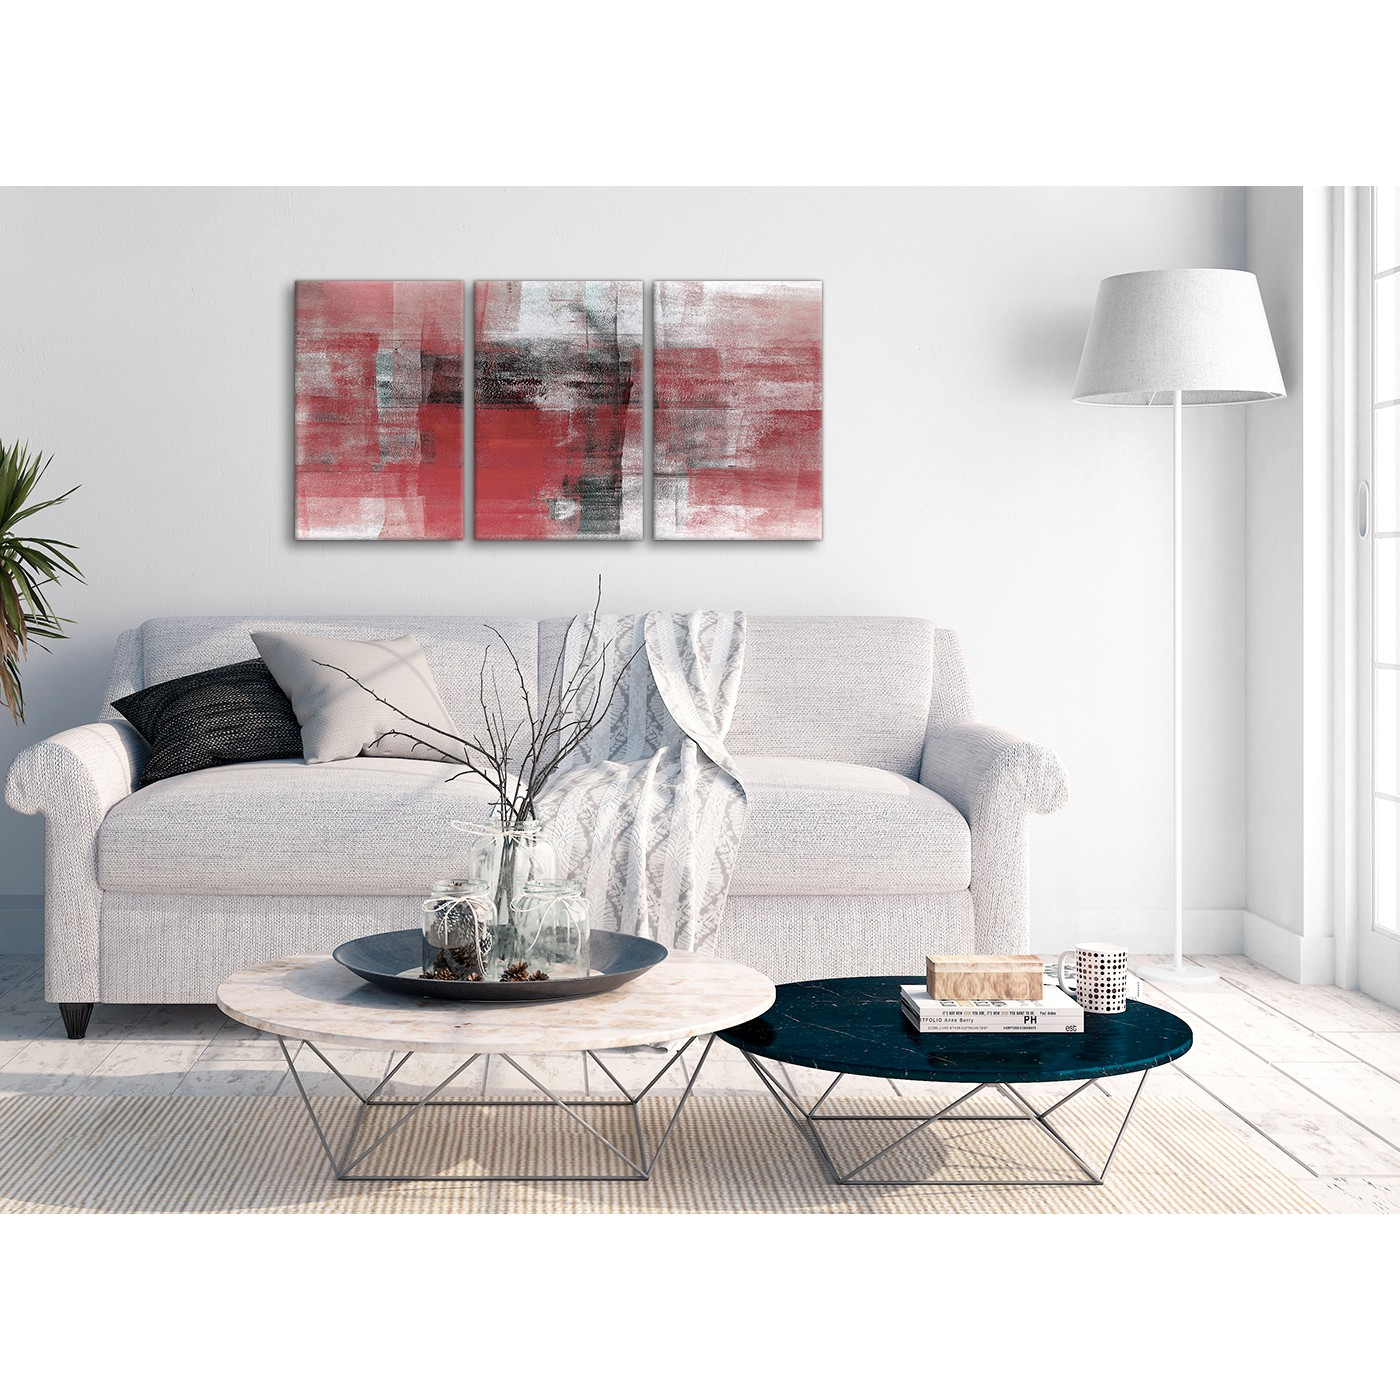 3 Piece Red Black White Painting Bedroom Canvas Wall Art